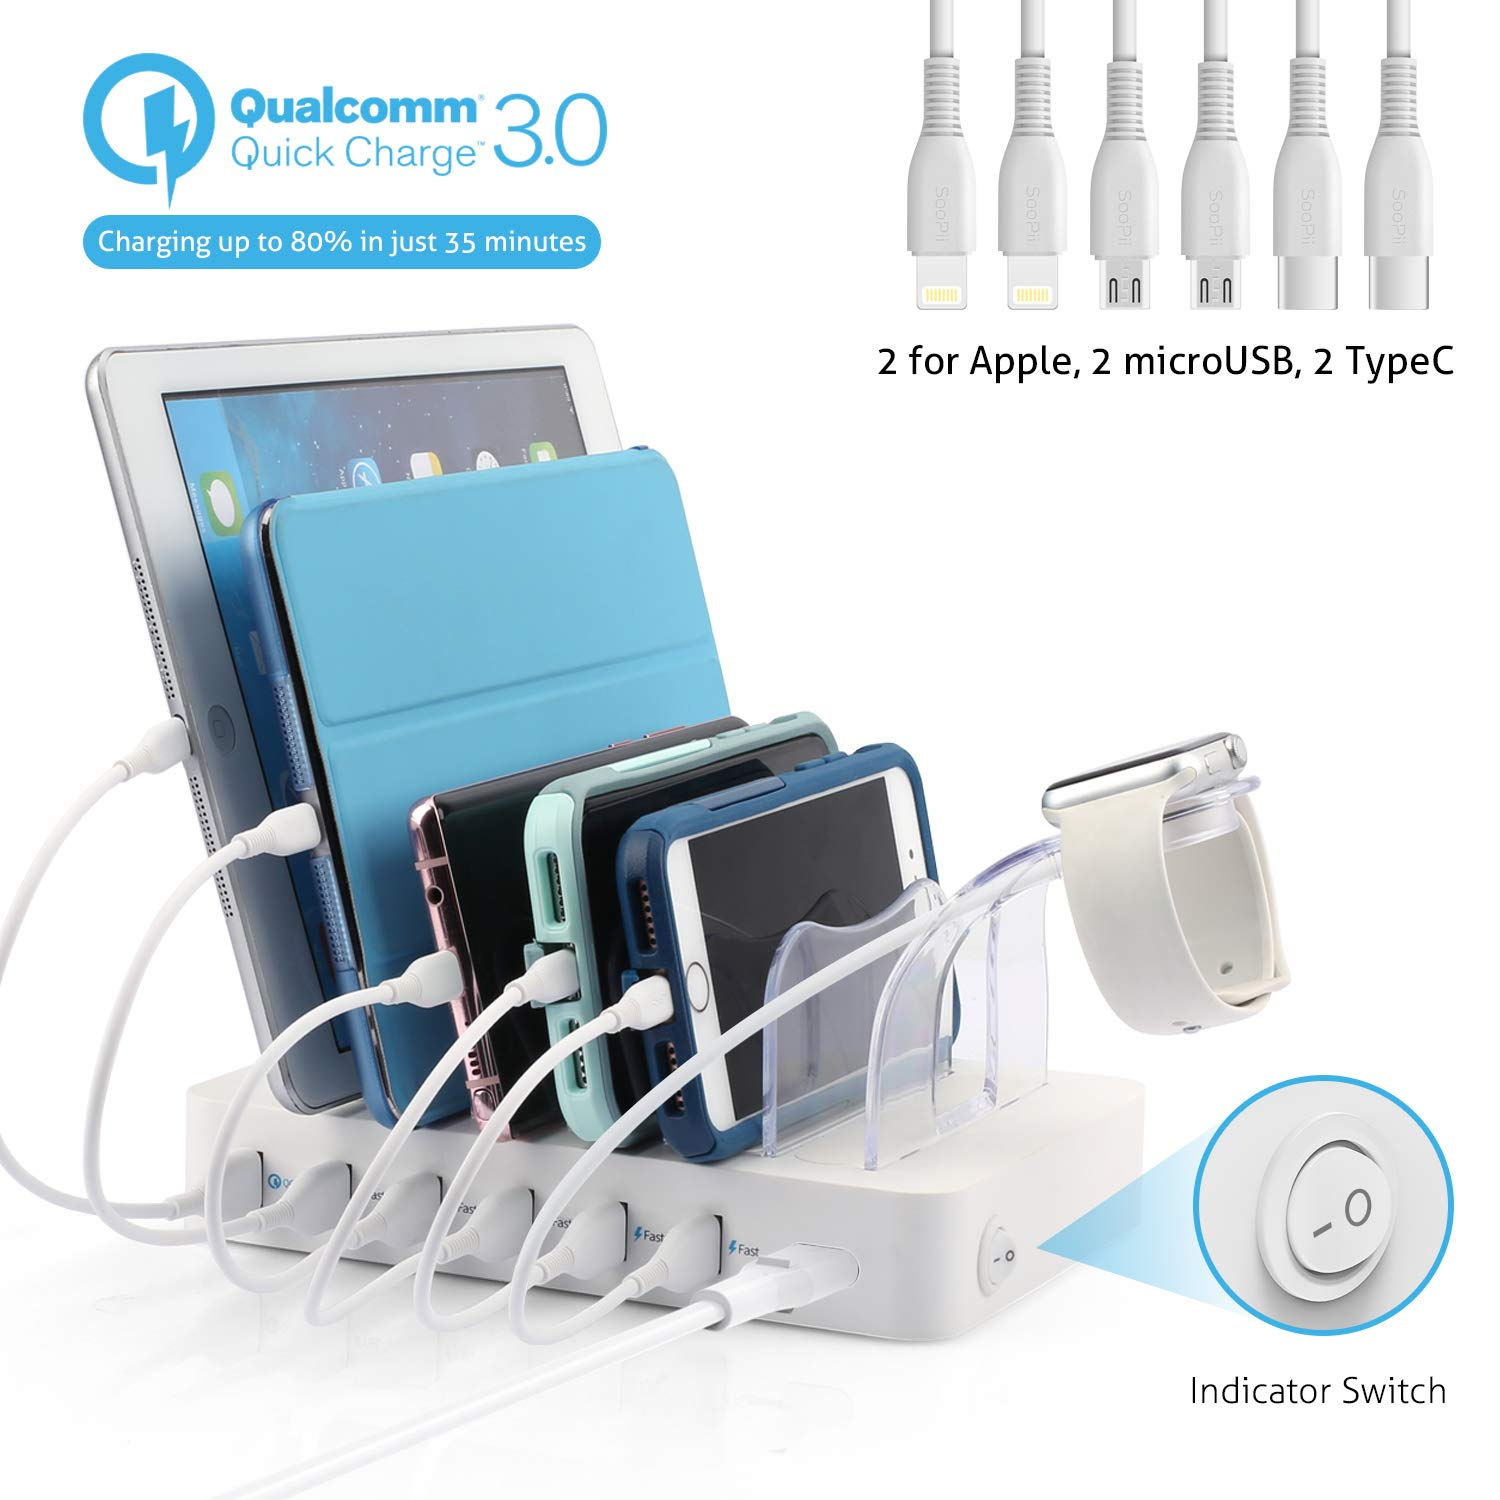 Soopii Quick Charge 3.0 60W/12A 6-Port USB Charging Station Organizer for Multiple Devices, 6 Short Mixed Cables Included, I Watch Holder,for Phones, Tablets, and Other Electronics